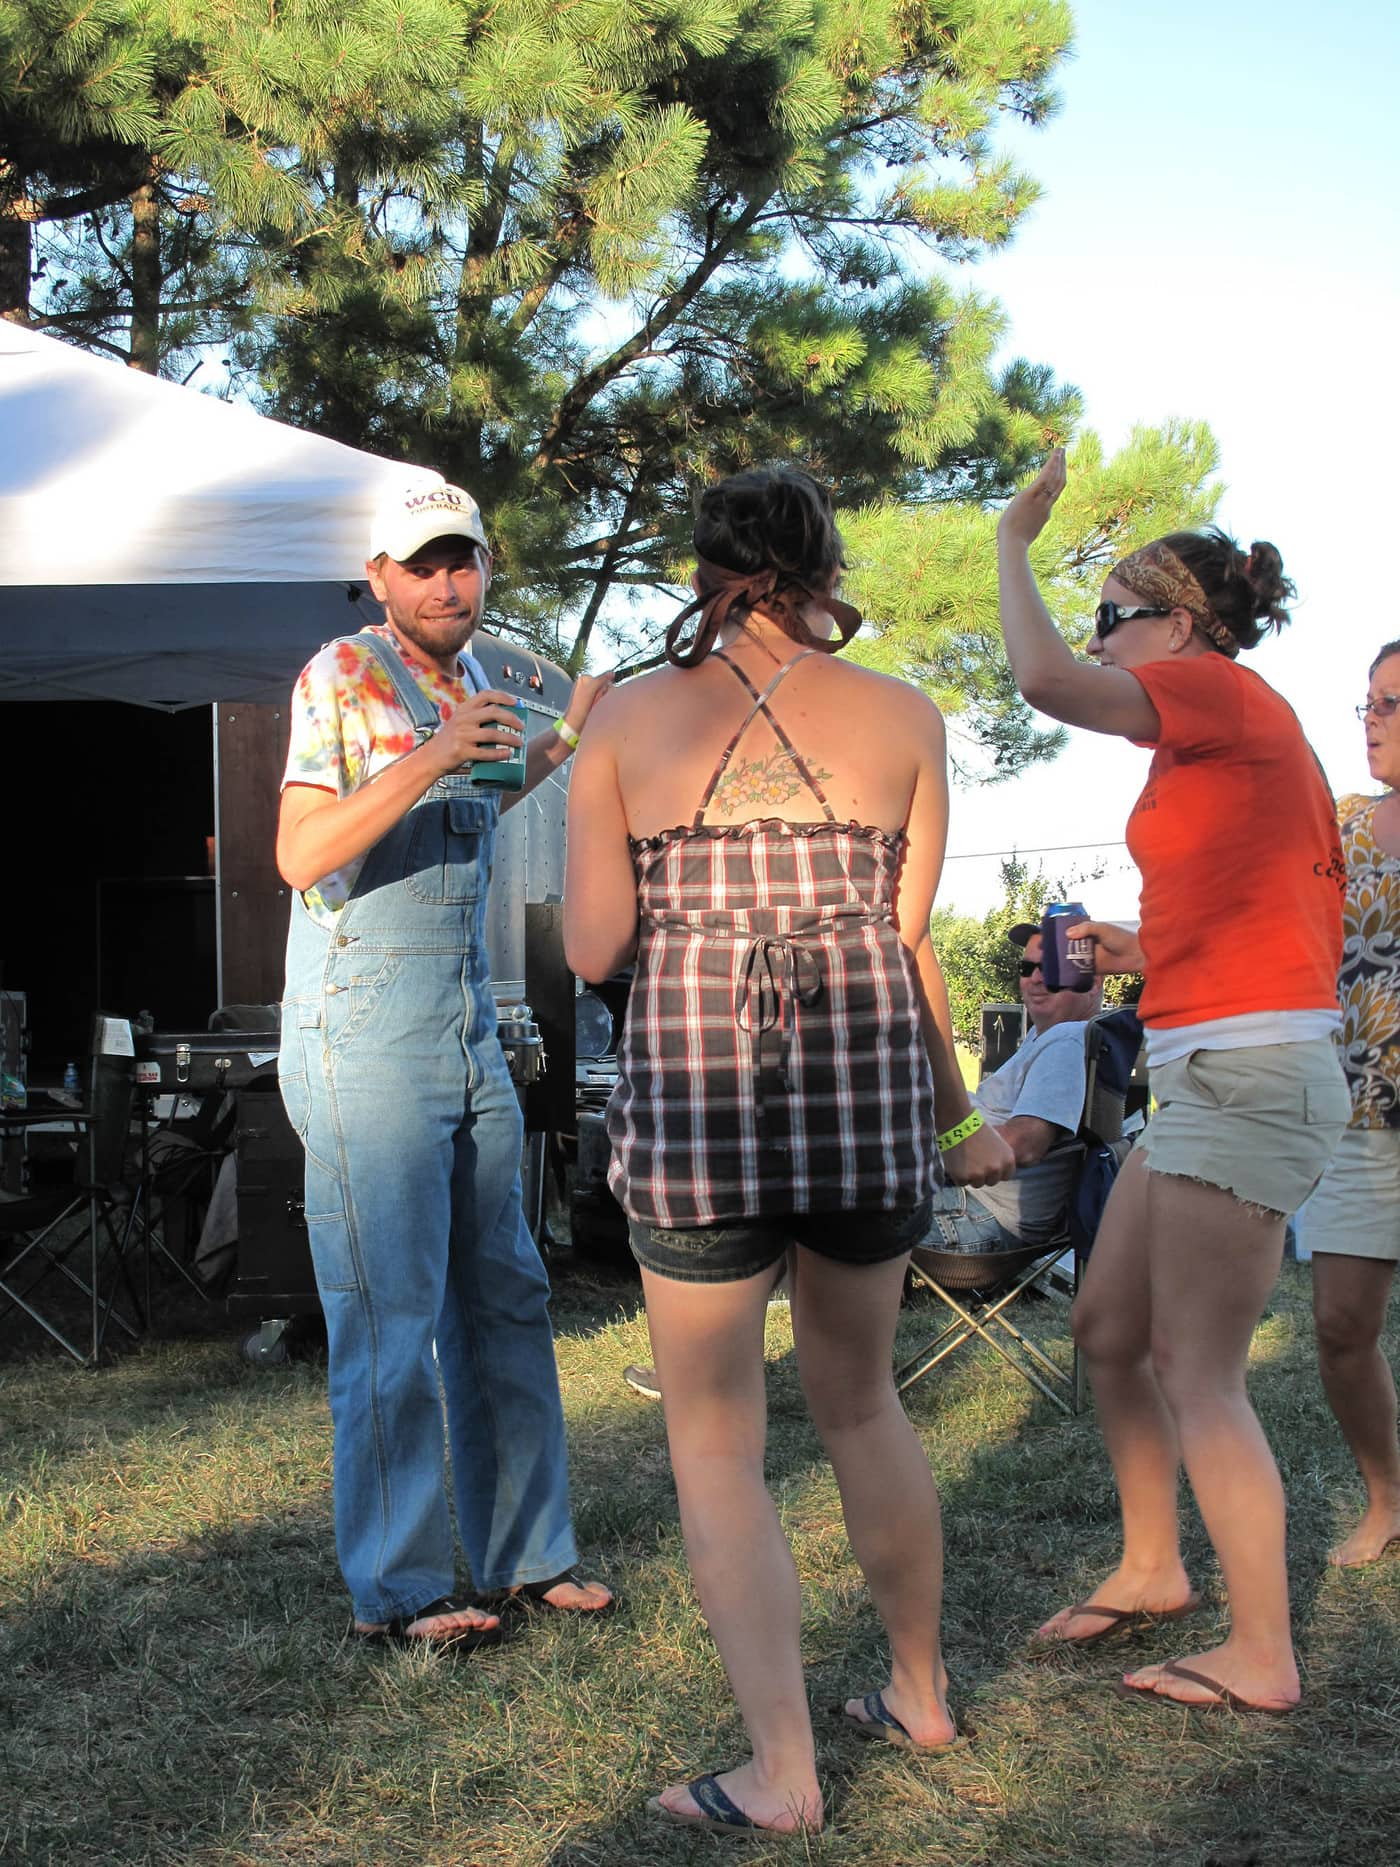 RedBone Willy's Bluegrass and Acoustic Music Festival - Dancing to bluegrass